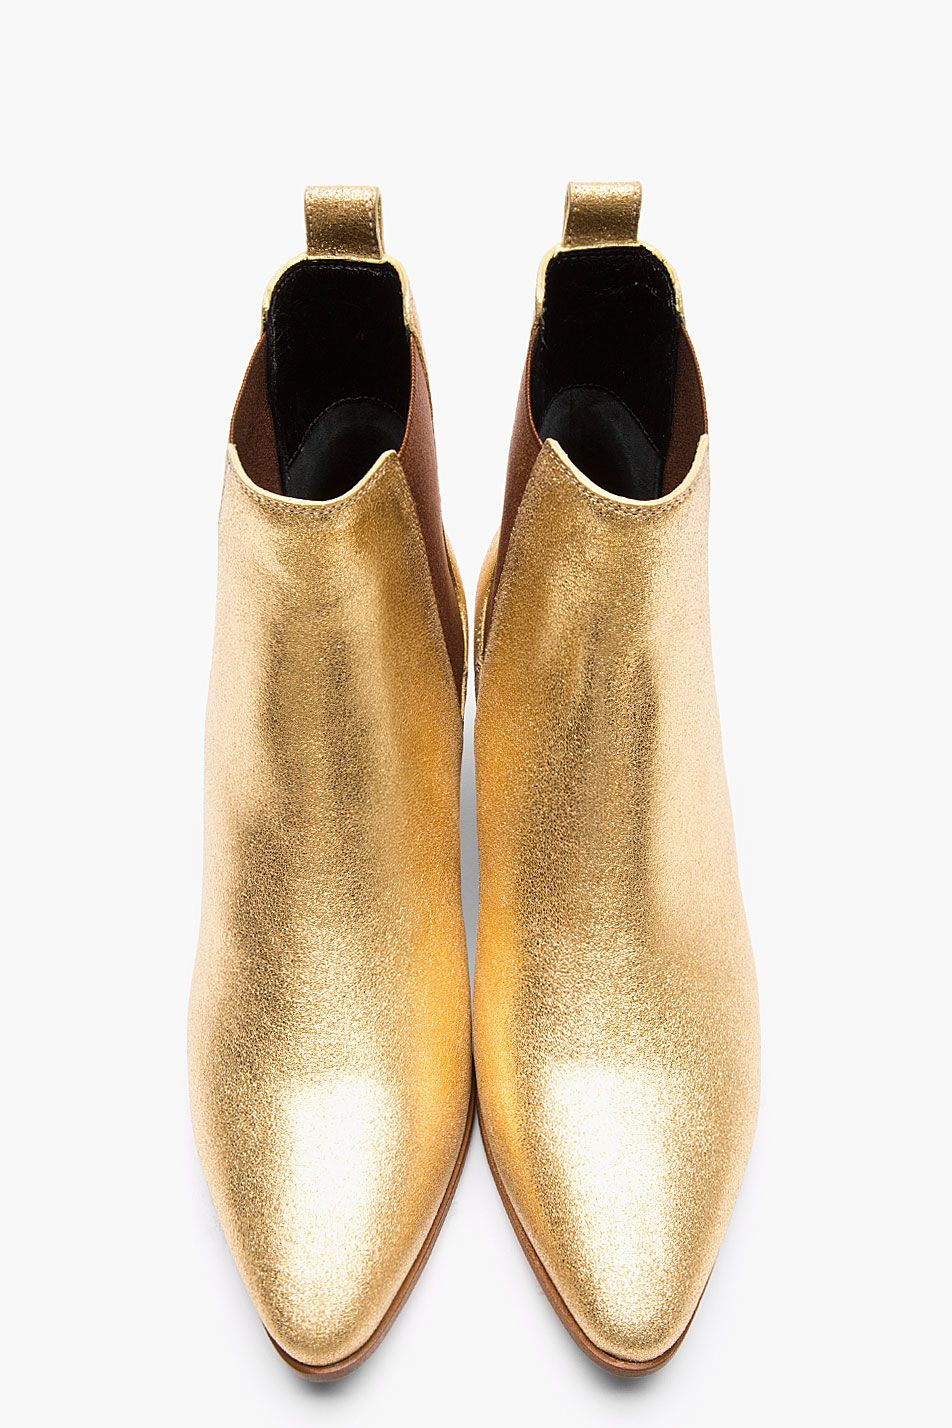 SAINT LAURENT Metallic Gold Leather Chelsea Ankle Boots  aad5f2b1f57f